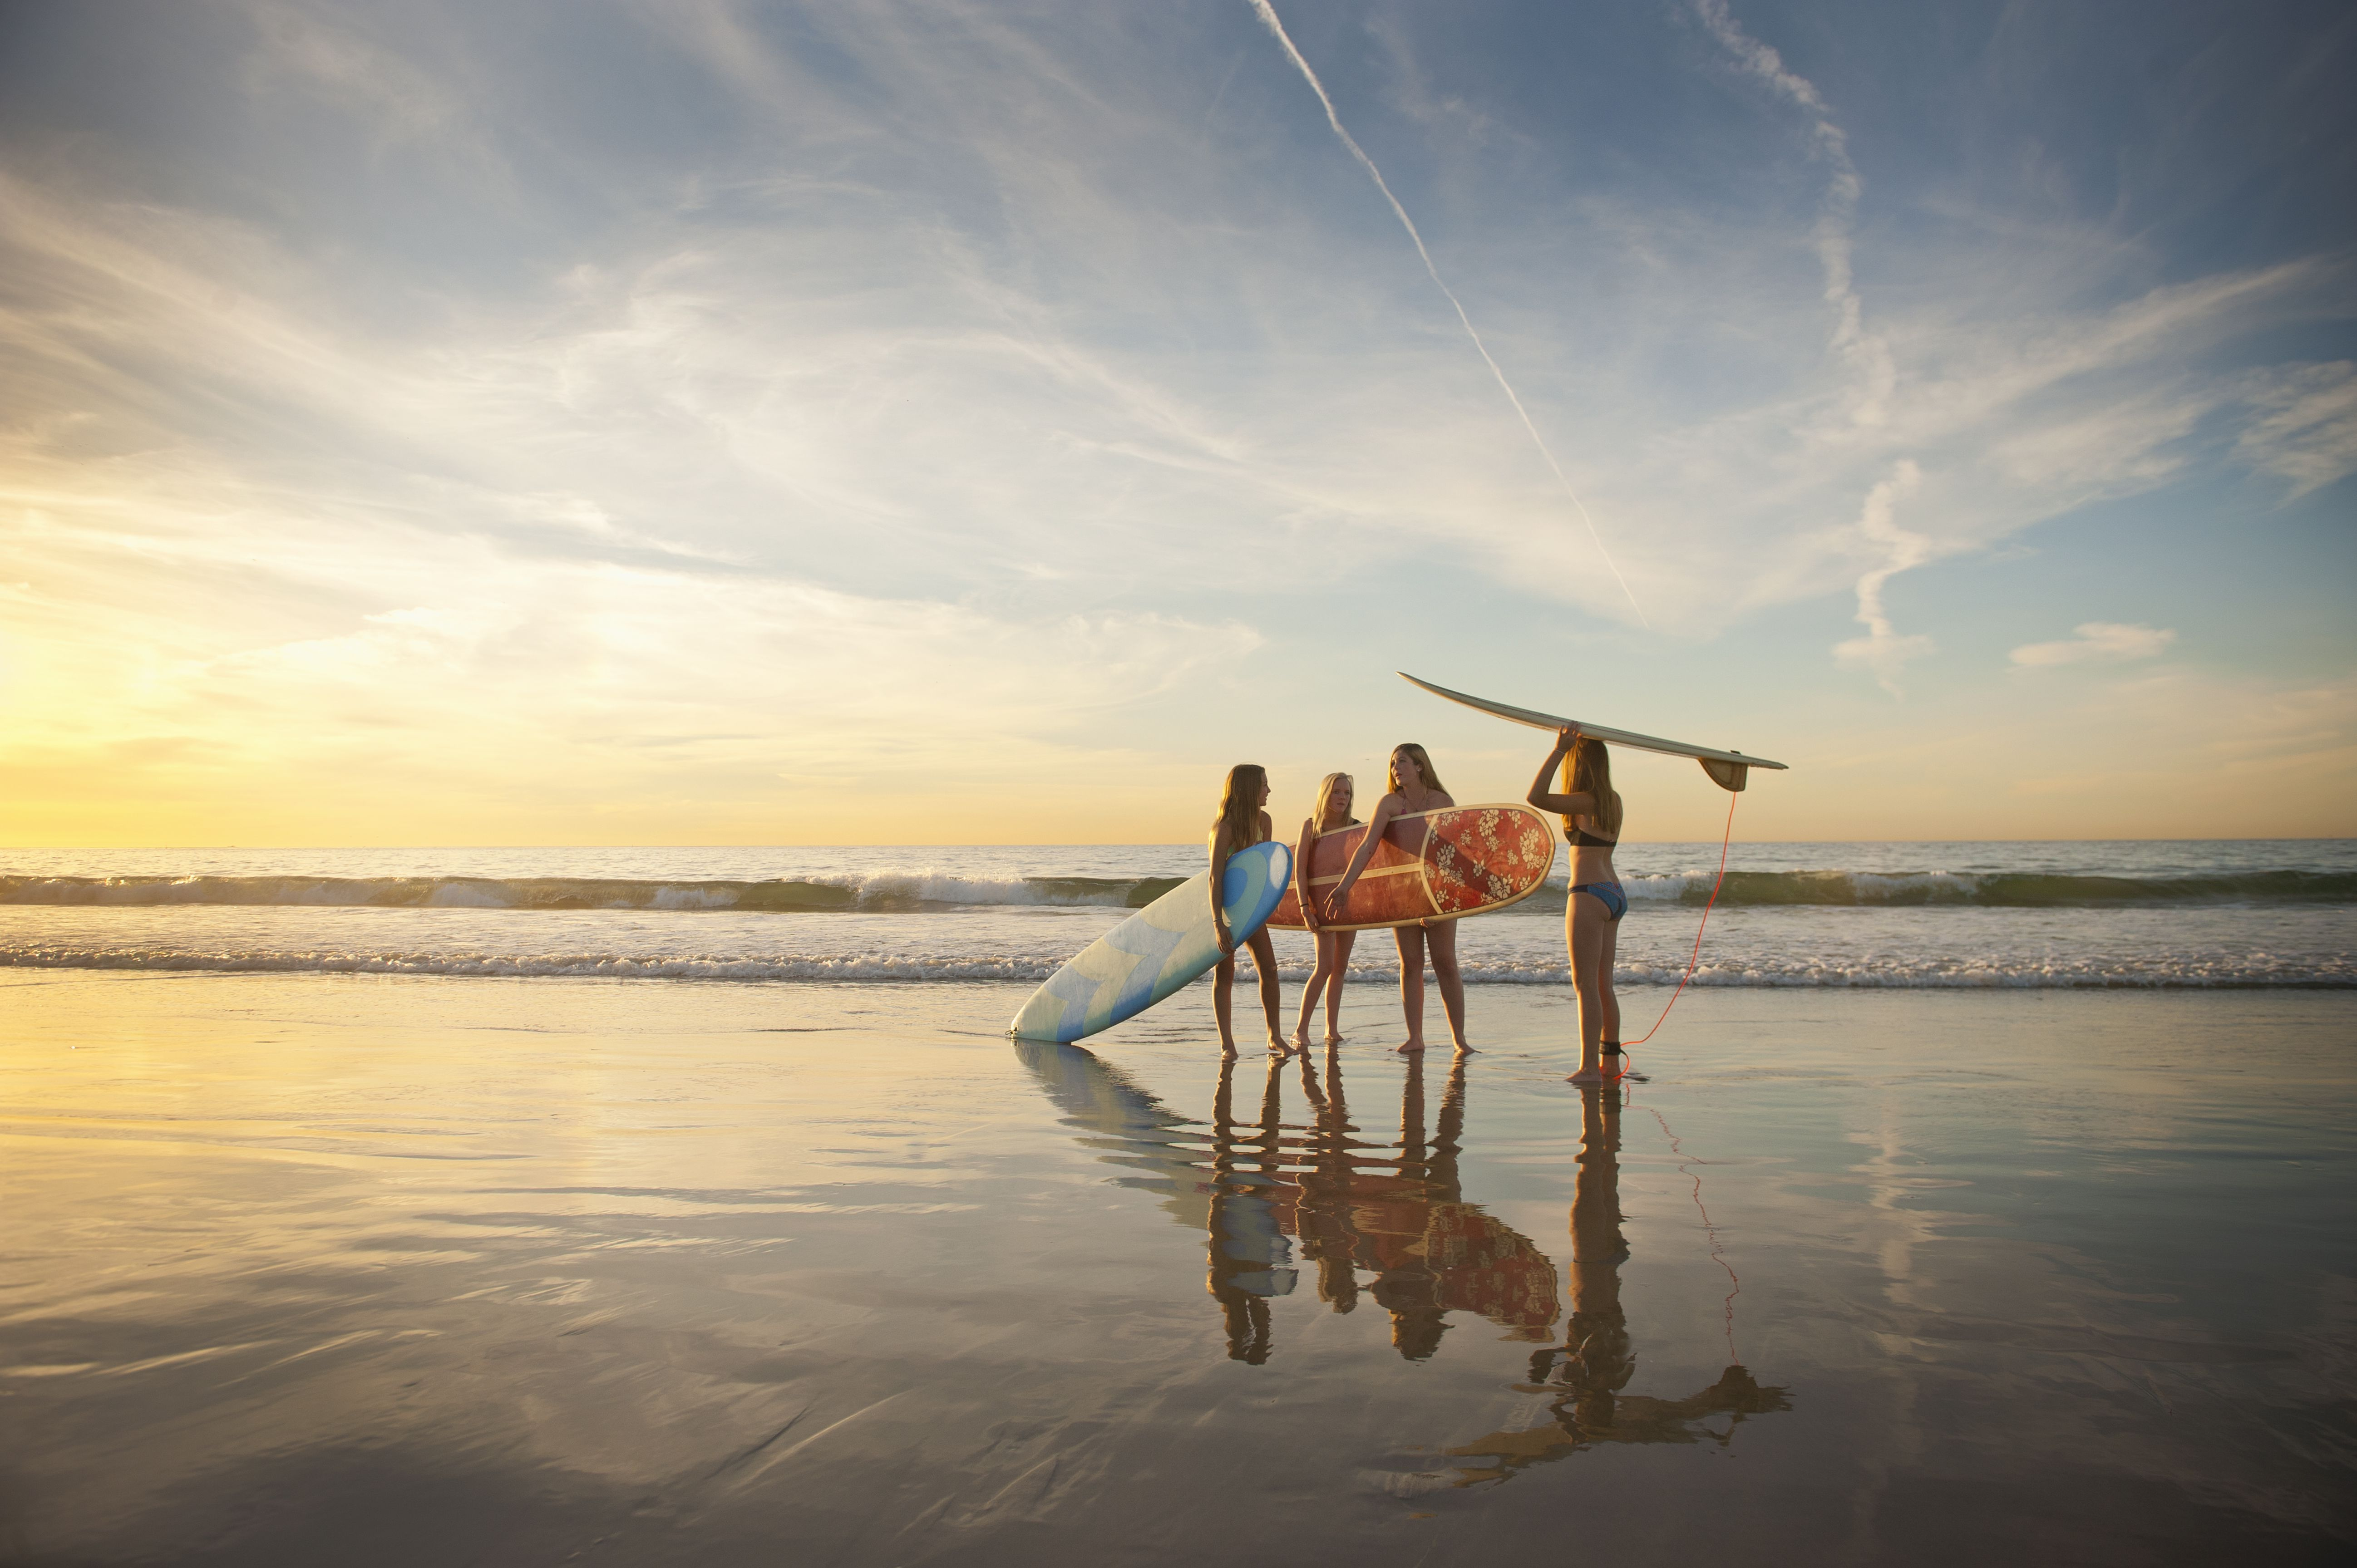 teen girls going surfing, low tide, late afternoon